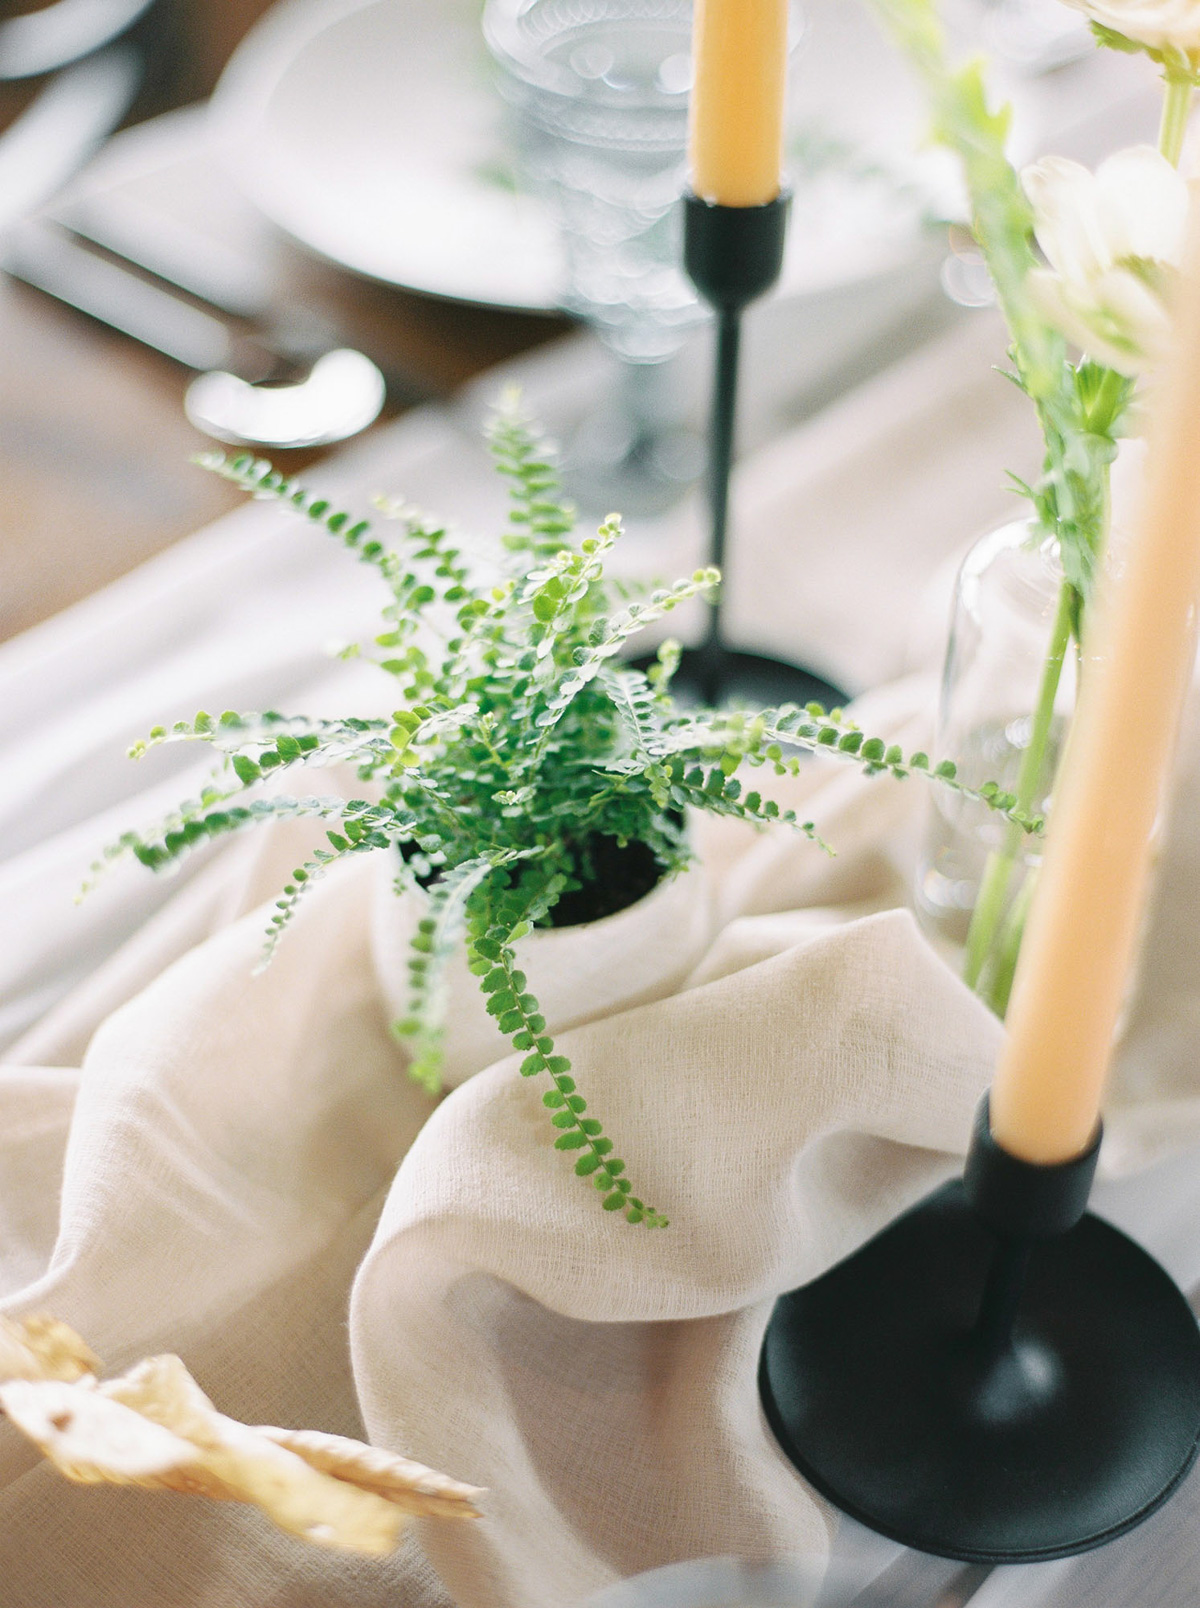 will-reid-photo-vineyard-bride-swish-list-kurtz-orchards-market-niagara-on-the-lake-wedding-editorial-14.jpg